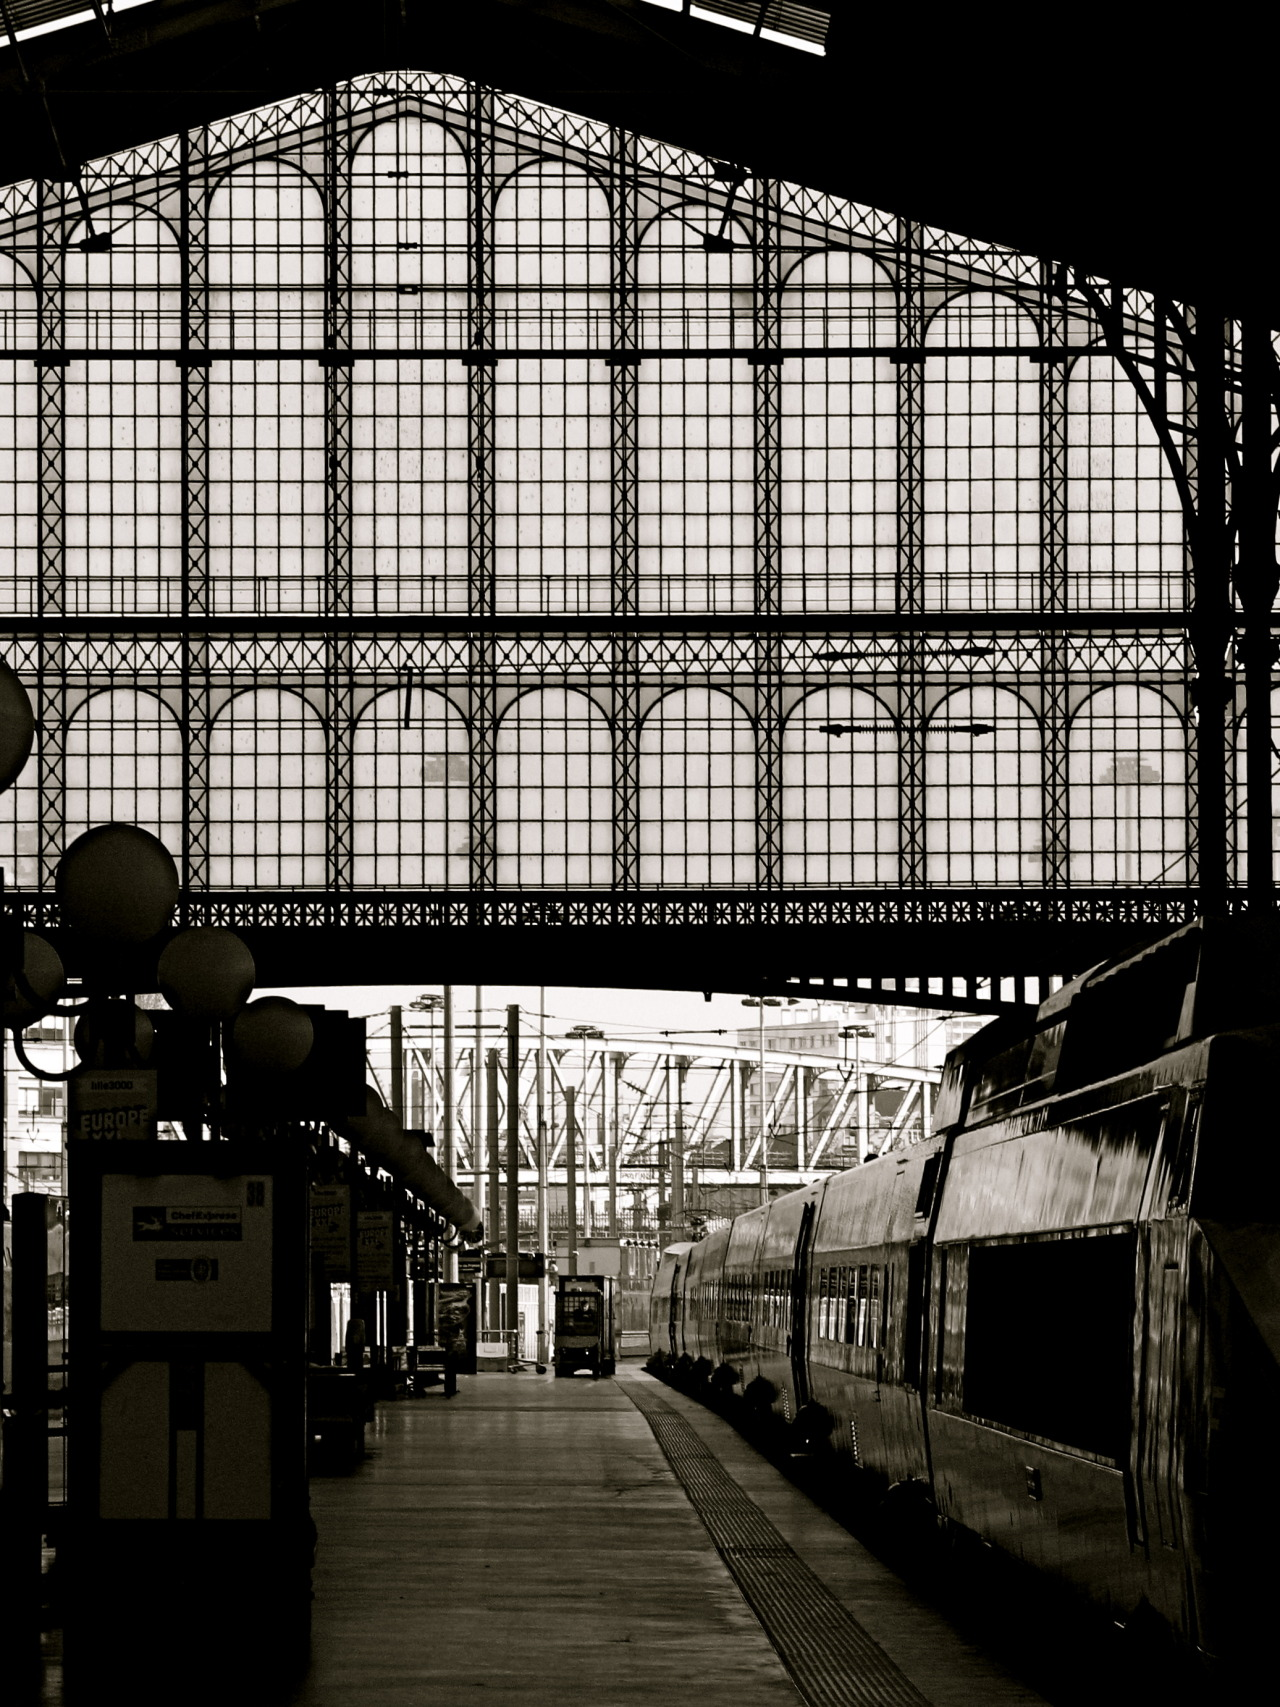 dianakgarrettphotography:  …outbound…  By Diana K. Garrett, Paris Gare du Nord